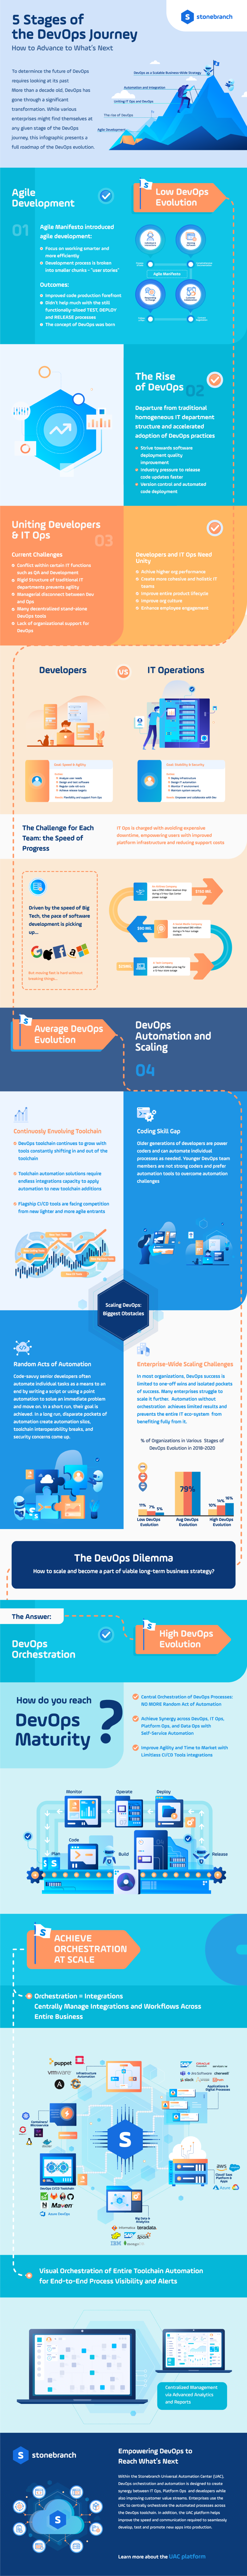 5 Stages of the DevOps Journey: A Roadmap for Advancing to the Next Level Infographic